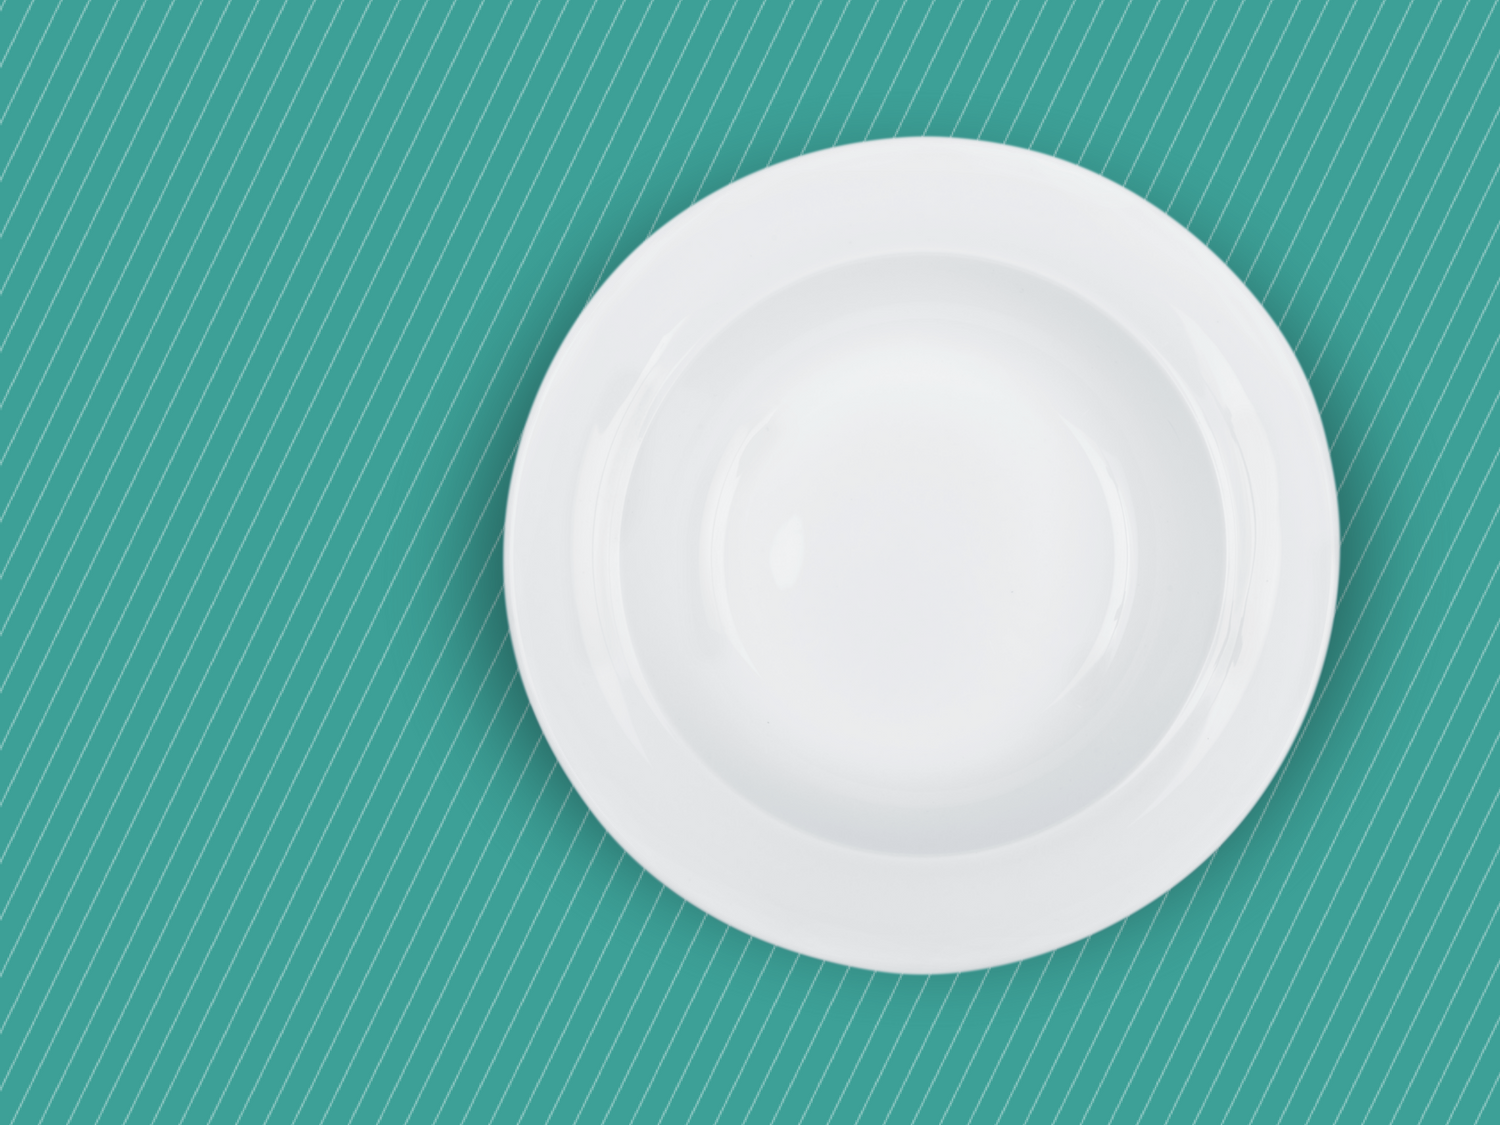 Copy of plates.png